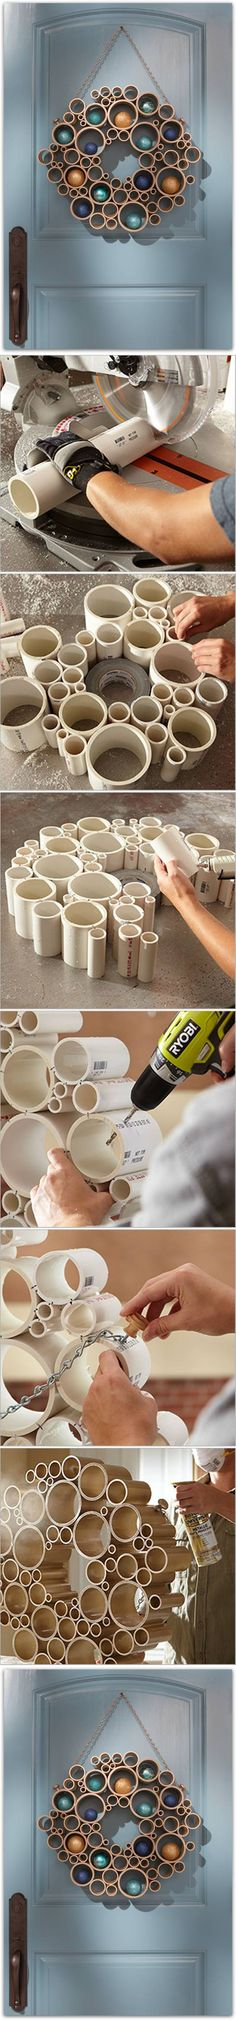 christmas wreaths, holiday wreaths, home projects, diy crafts, diy tutorial, holidays, pvc pipes, diy home, festiv holiday